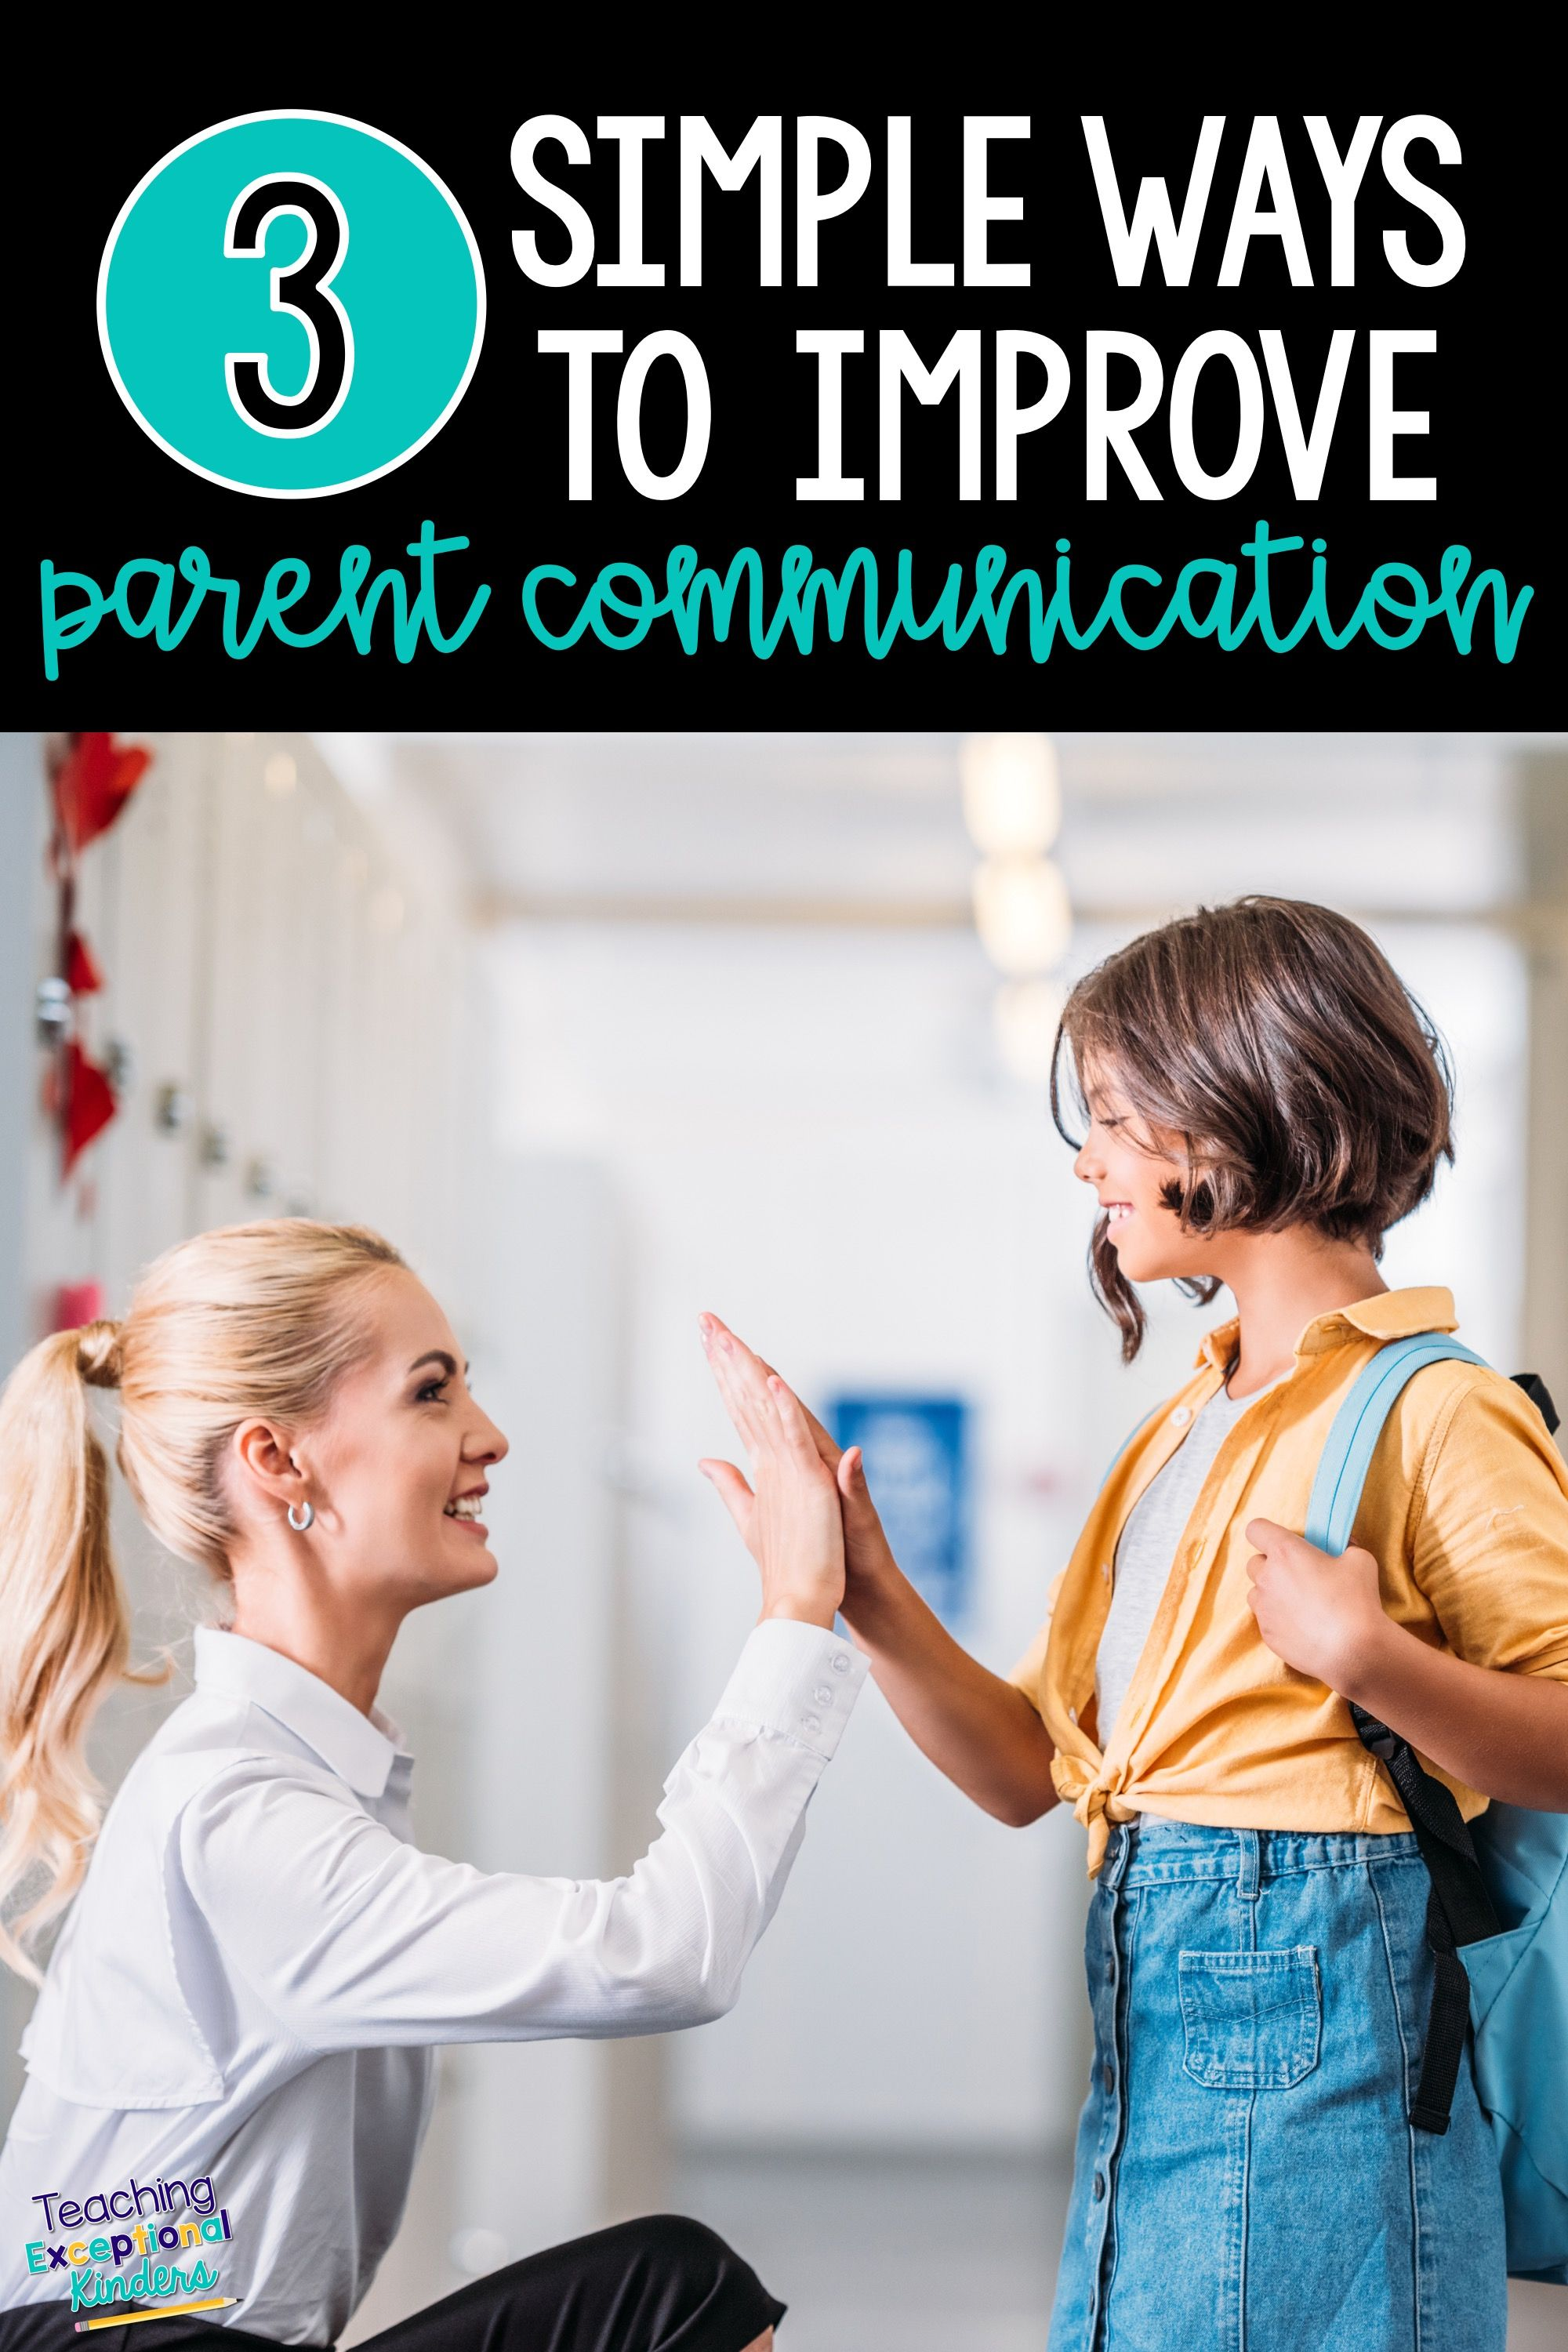 3 Simple Ways To Improve Communication With Parents